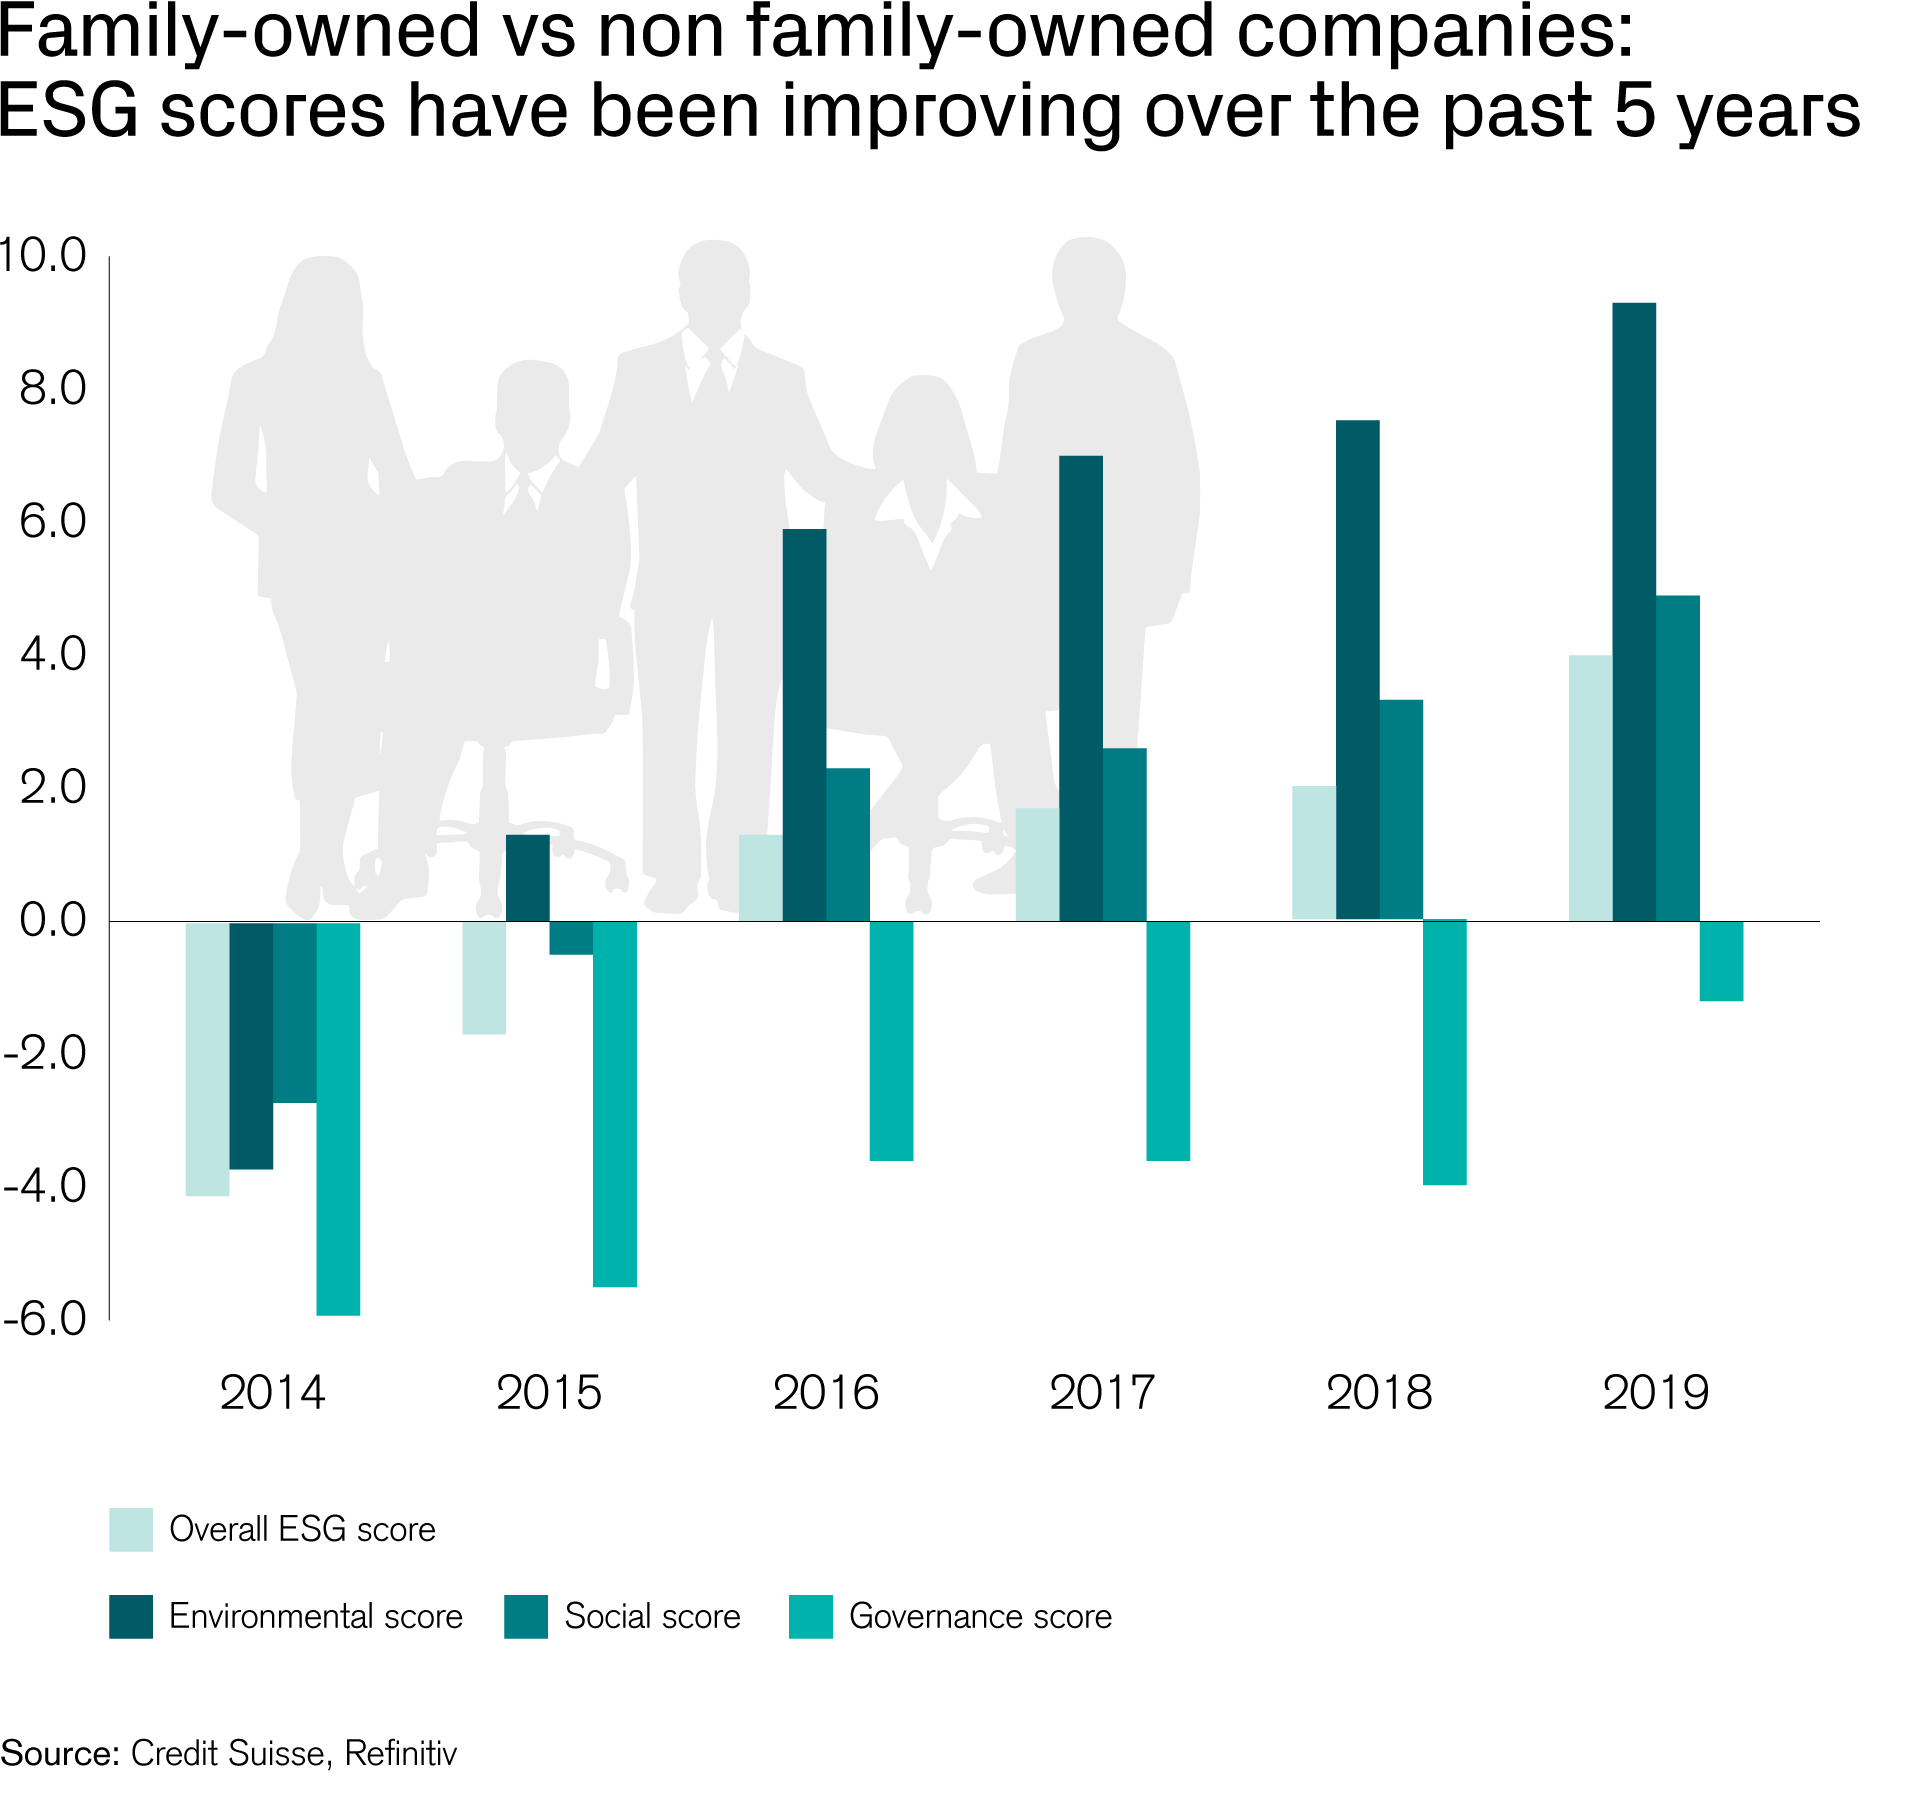 Family-owned businesses vs non-family owned businesses: ESG performance